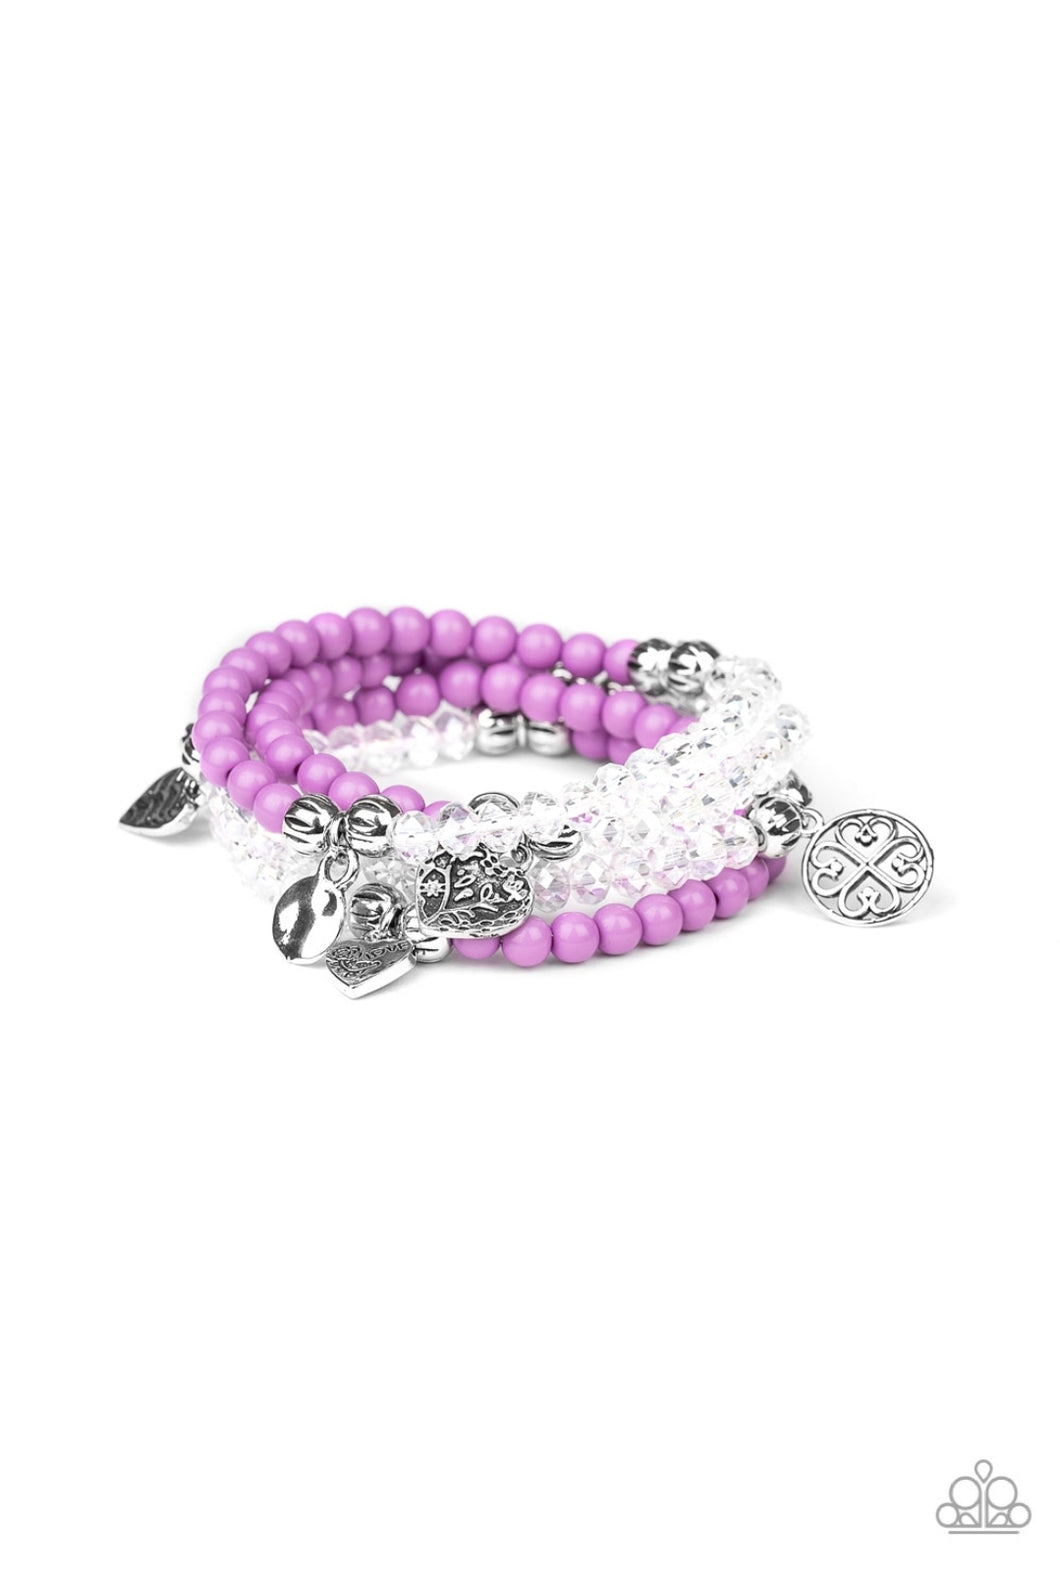 Paparazzi Bracelet  - Colorfully Cupid - White